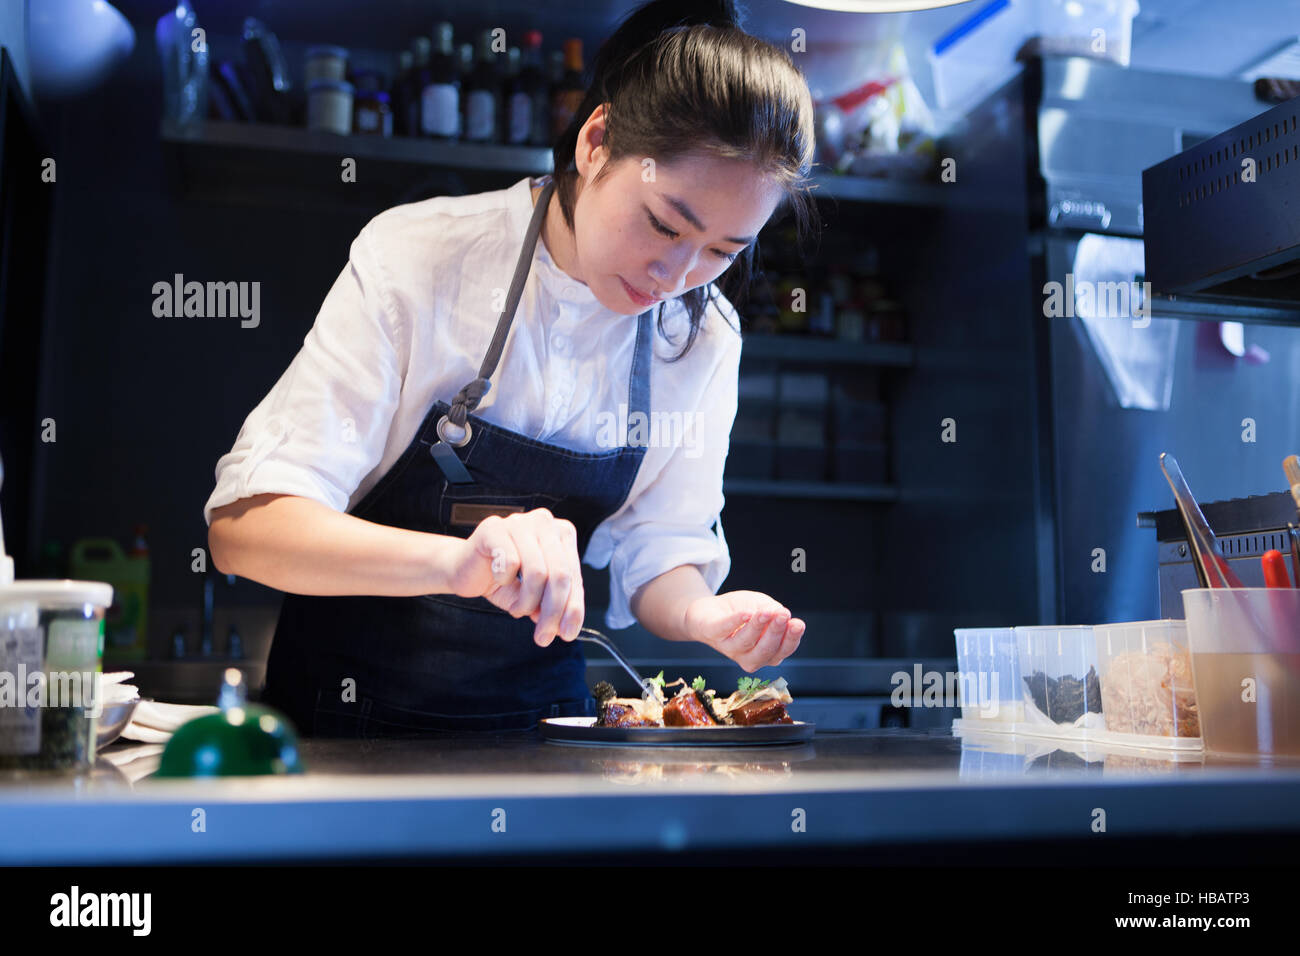 Chef in commercial kitchen seasoning food - Stock Image